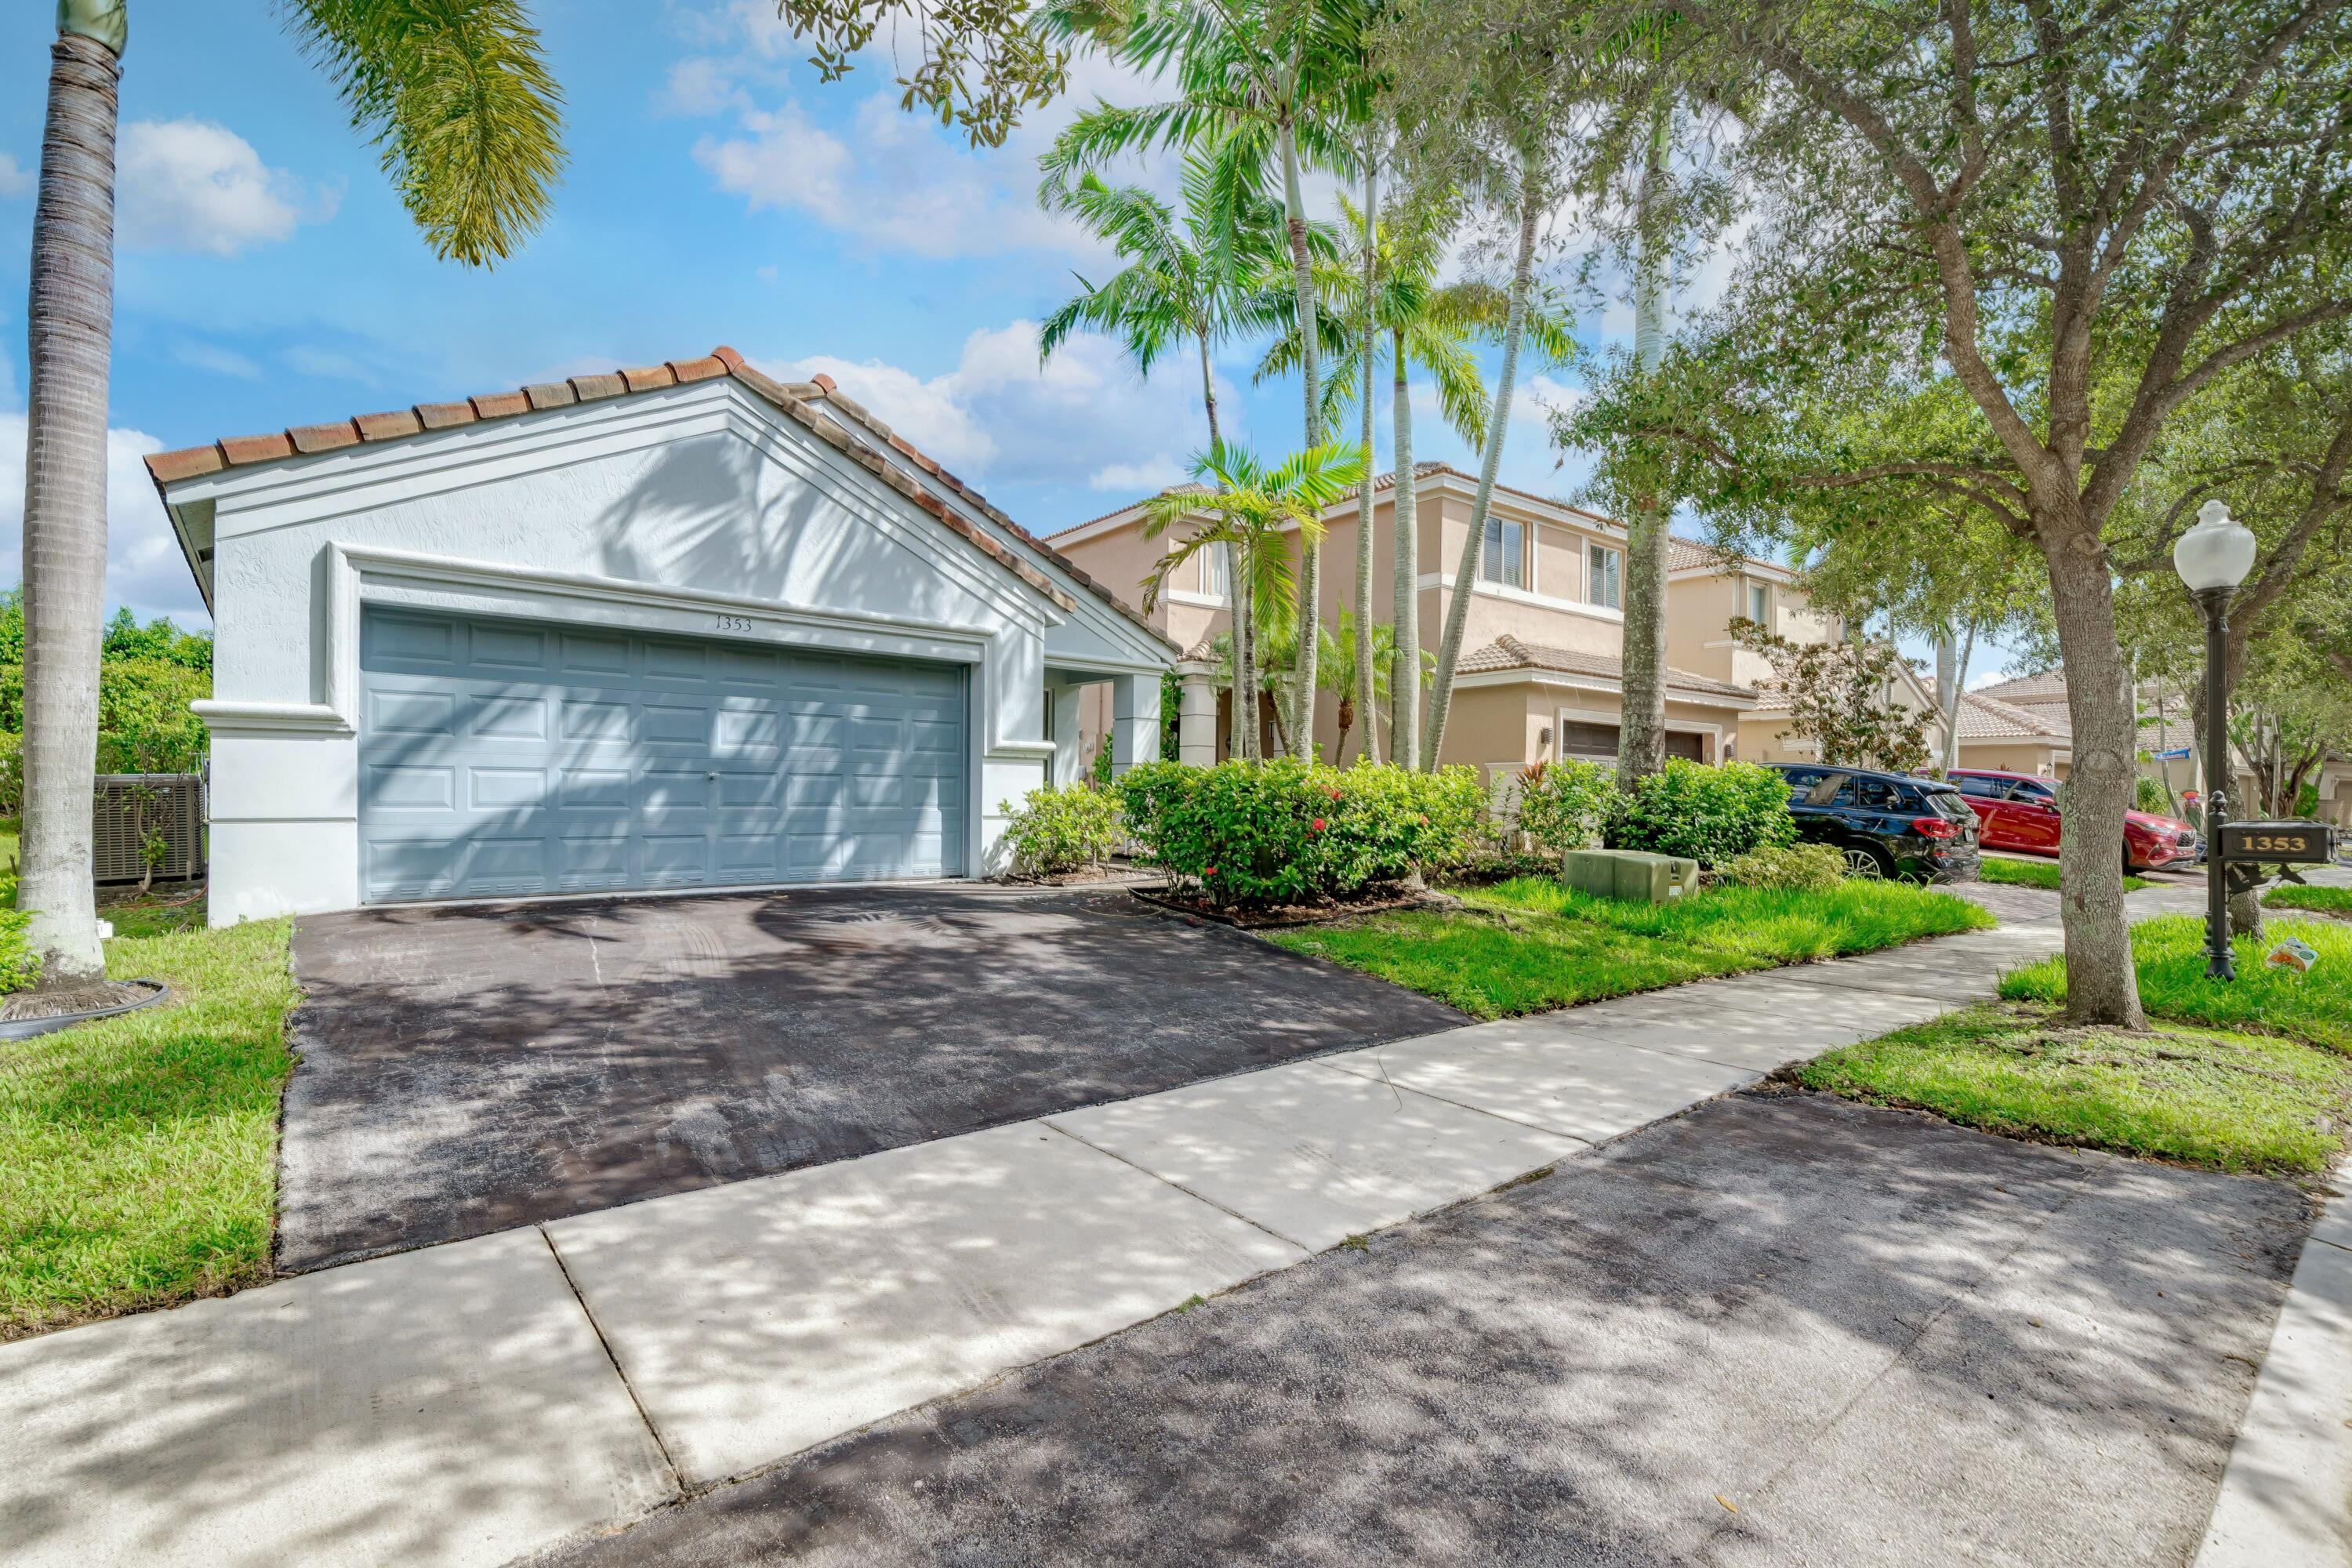 Don't miss this beautiful home in the highly sought after gated community of Savanna!  This 3/2 is ready to become home to a new family who will love it just as much as it's previous owners!  Hurry, because this will simply not last!  New AC, inside & out.  Washer, dryer, and hot water heater all < 1 year old!  All home appliances have transferrable warrantees as well.  Benefits of living in this neighborhood include access to amazing resort style amenities such as a soccer field, a basketball court, a mini golf course, a 4 mile walking trail, and much, much more!  Additionally, Weston A+ schools are some of the best in the country!